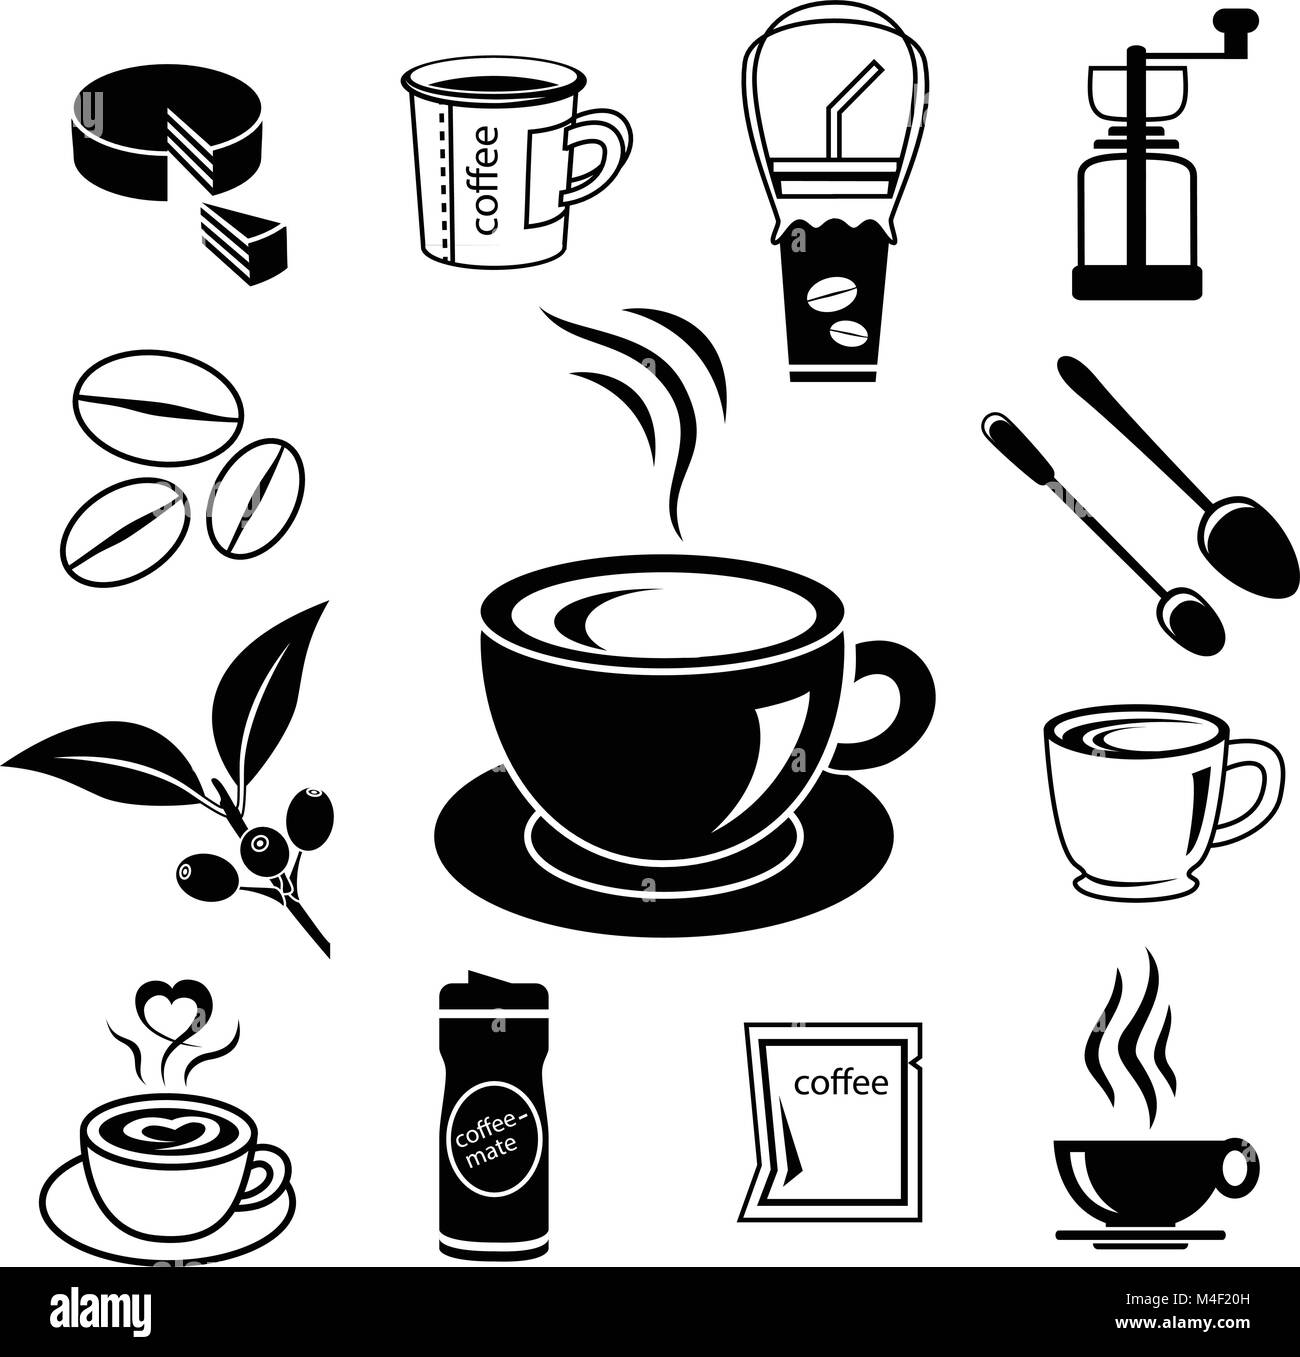 coffee icon set with accessory and ingredient of cup, glass, bean, sugar, bag, mug, grinder, package, spoon, cake, - Stock Image